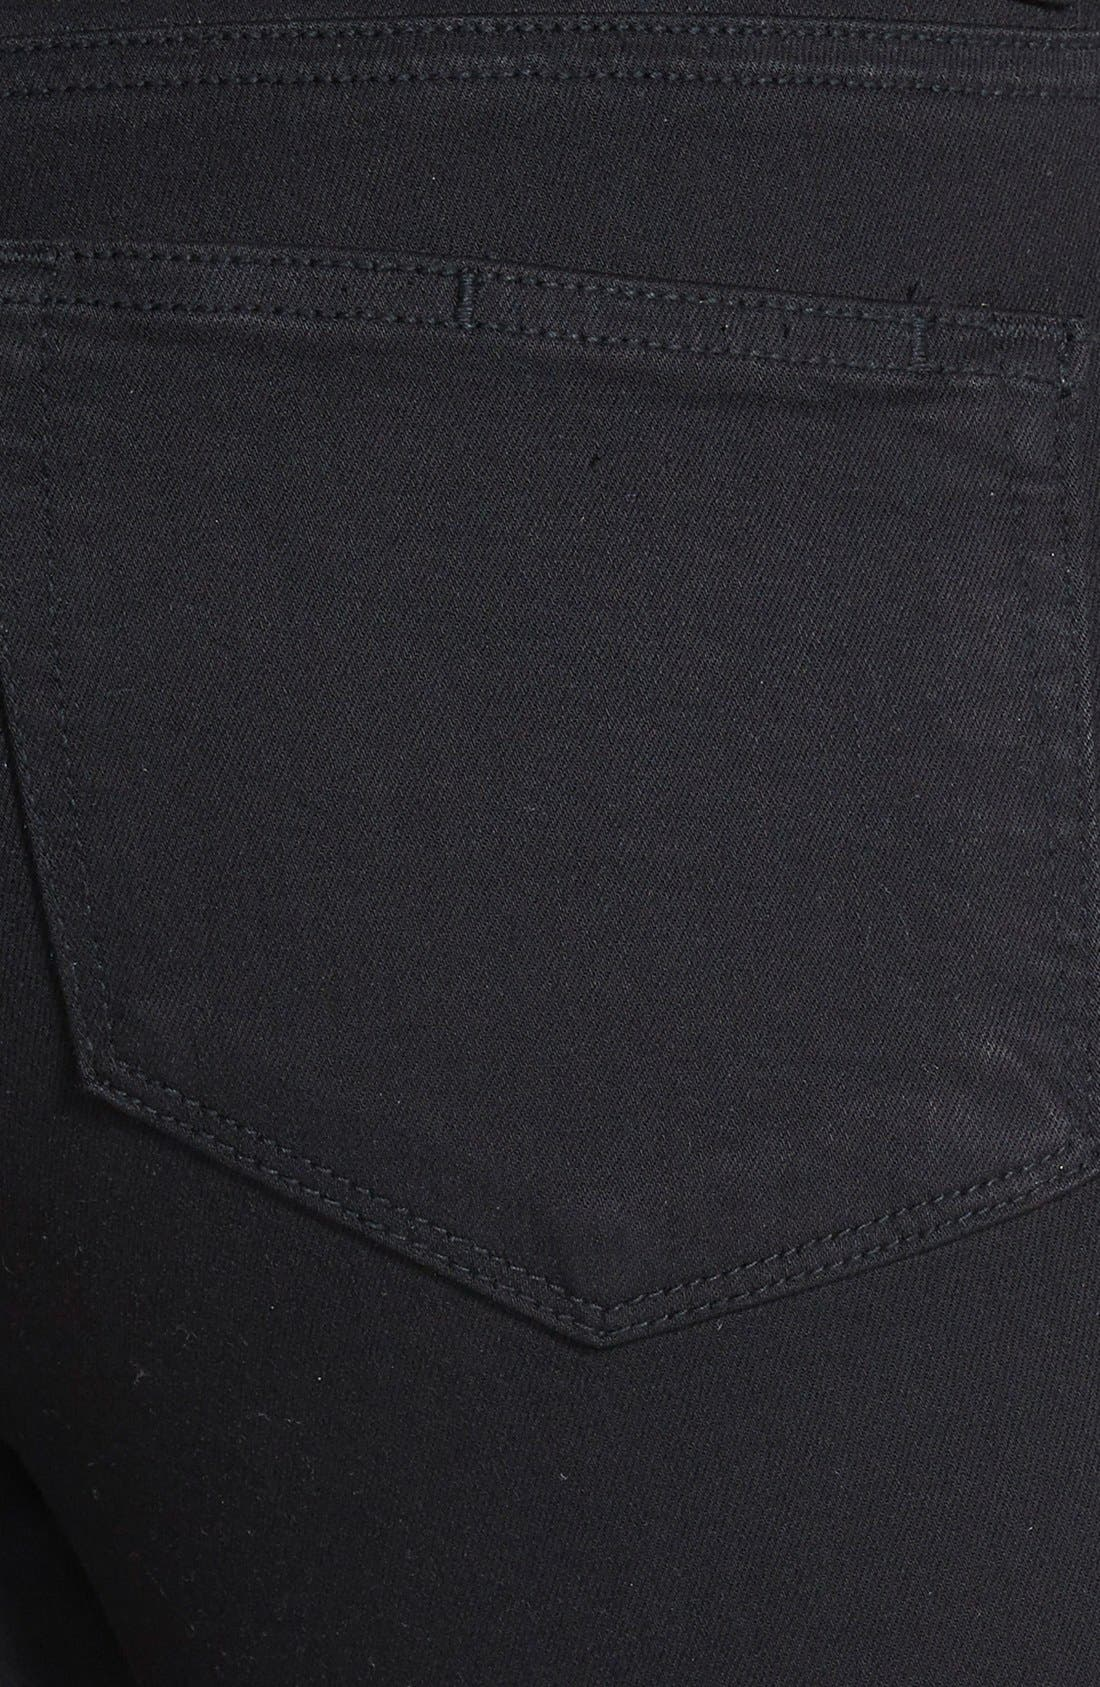 Alternate Image 3  - PAIGE Margot High Waist Ultra Skinny Jeans (Black Shadow)